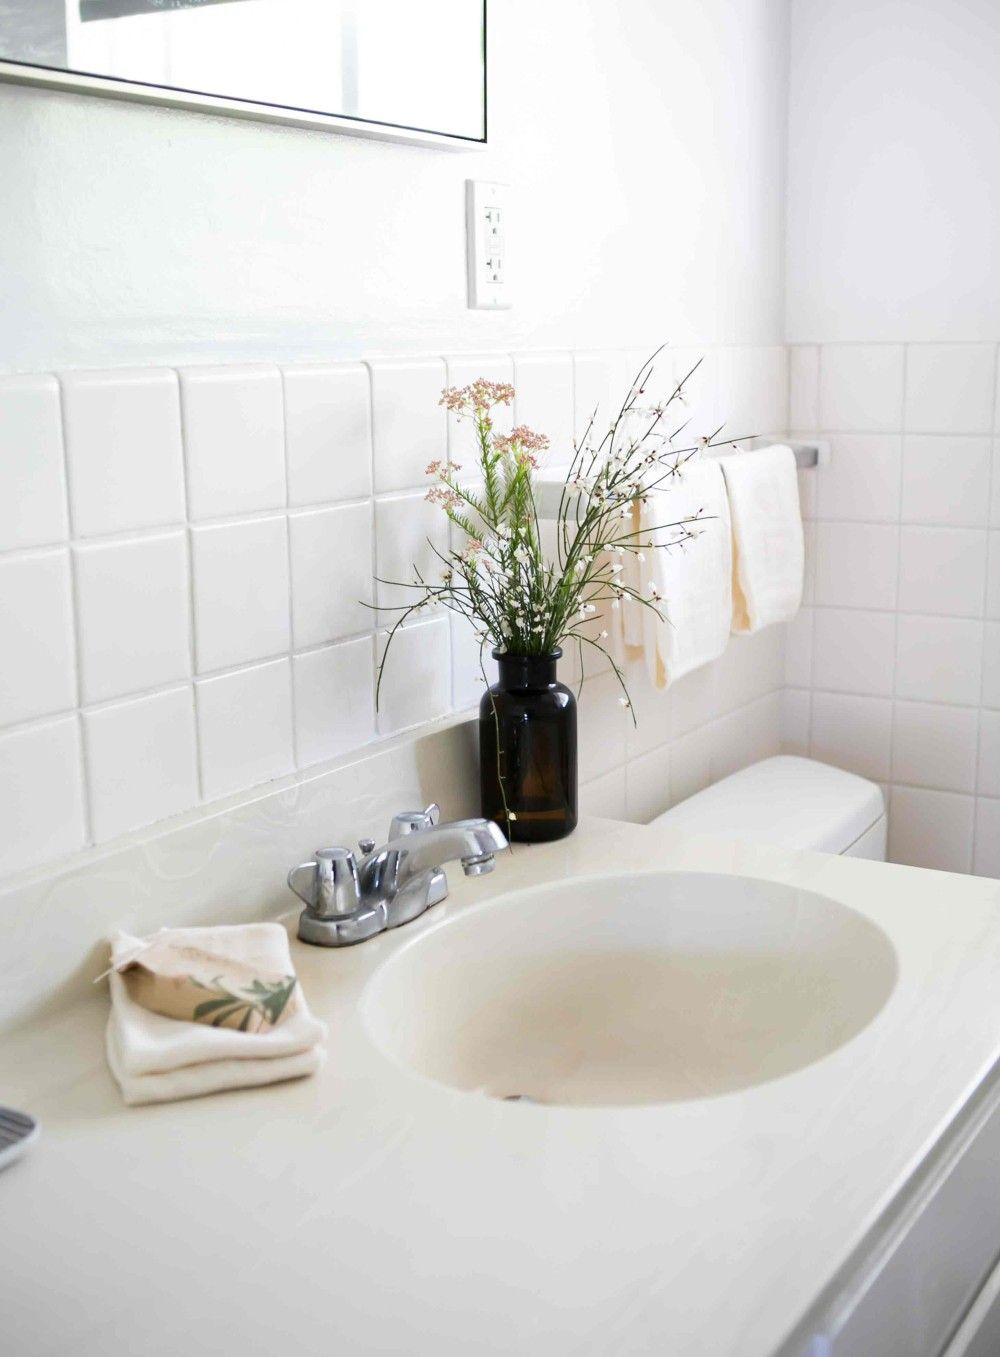 Design Sponge Bathrooms Mesmerizing A Young Family's Happy Goldenstate Home  Design*sponge  Water Design Inspiration